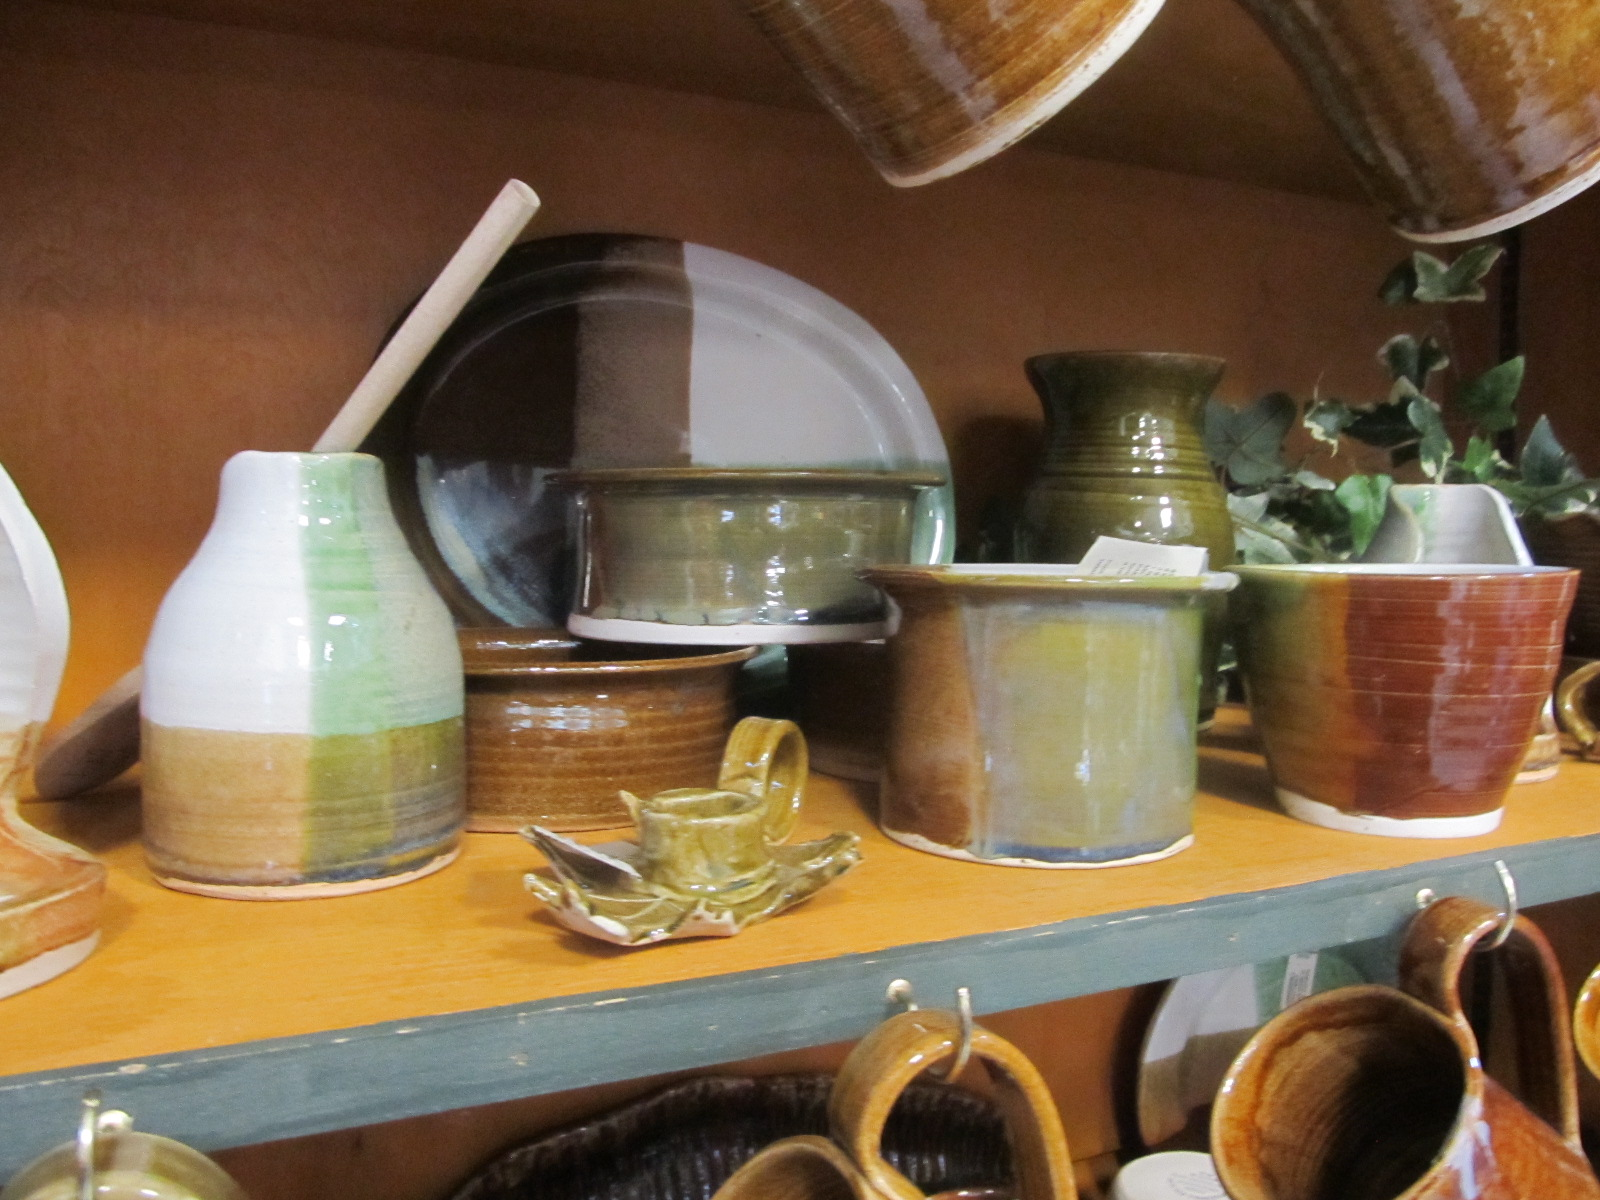 New Shipment of Greenhill Pottery Has Arrived